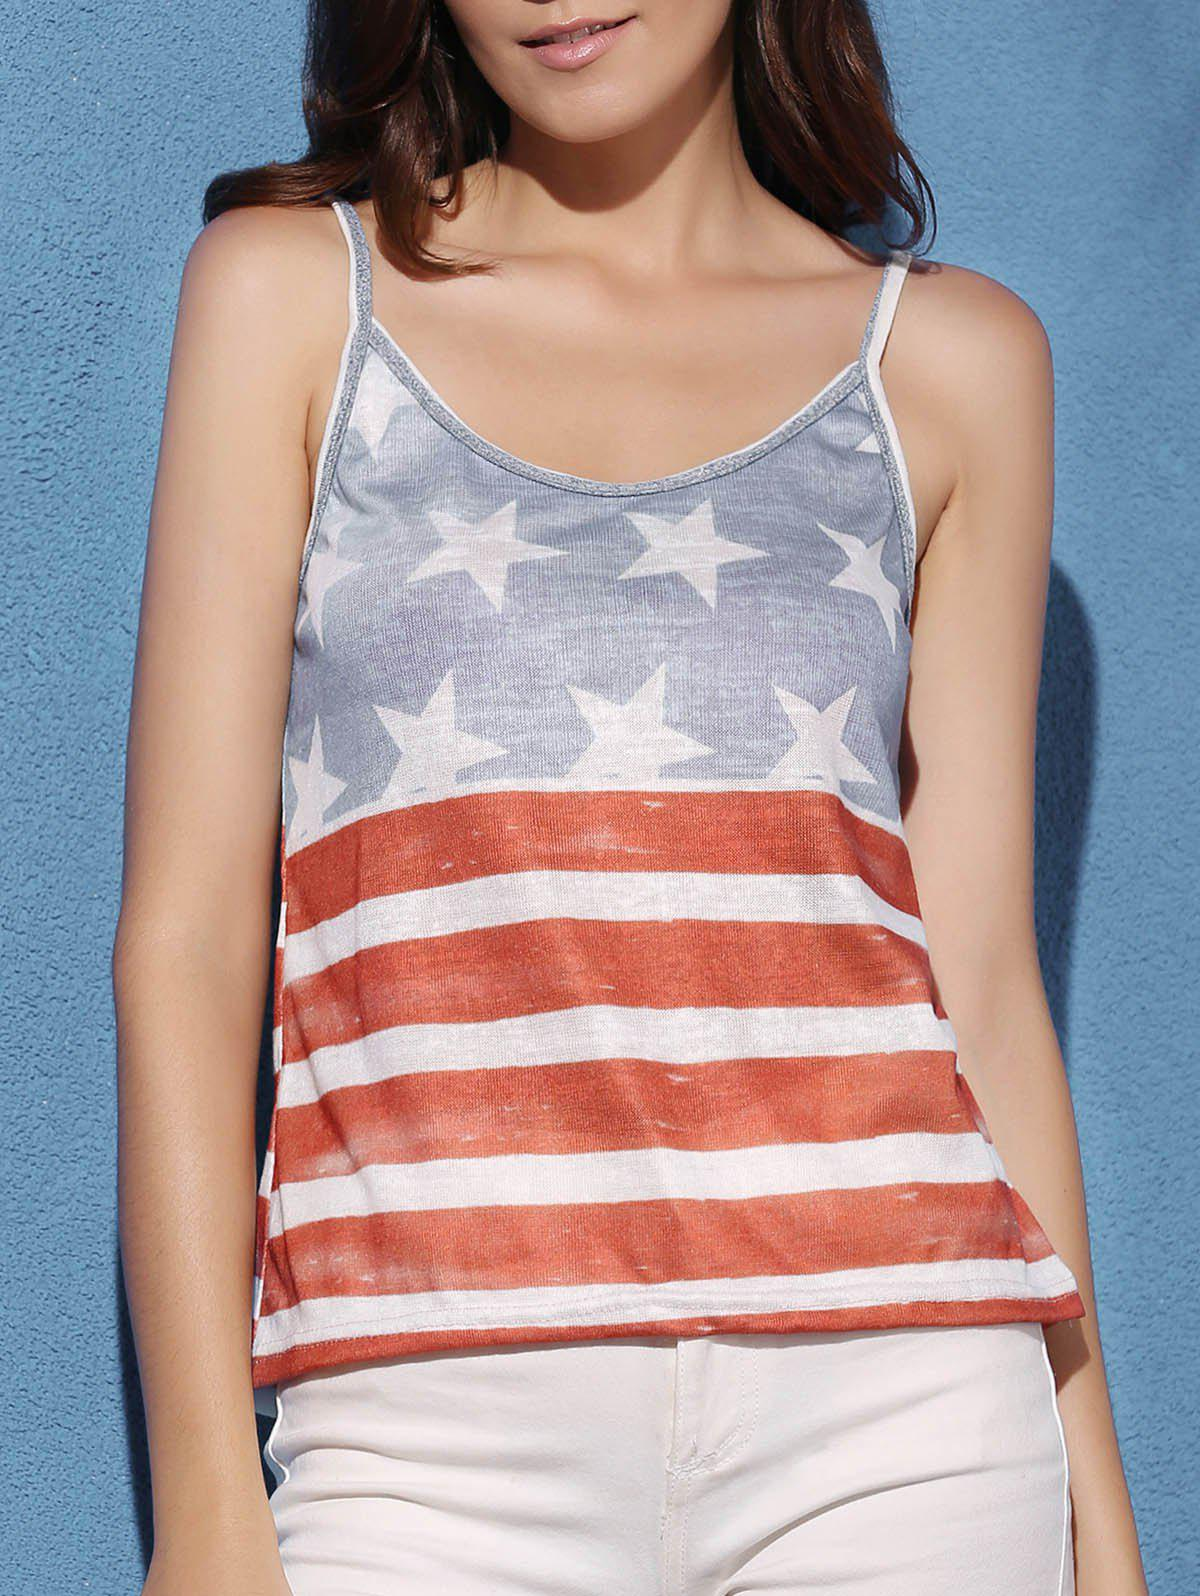 American Flag Cami Tank Top - COLORMIX S